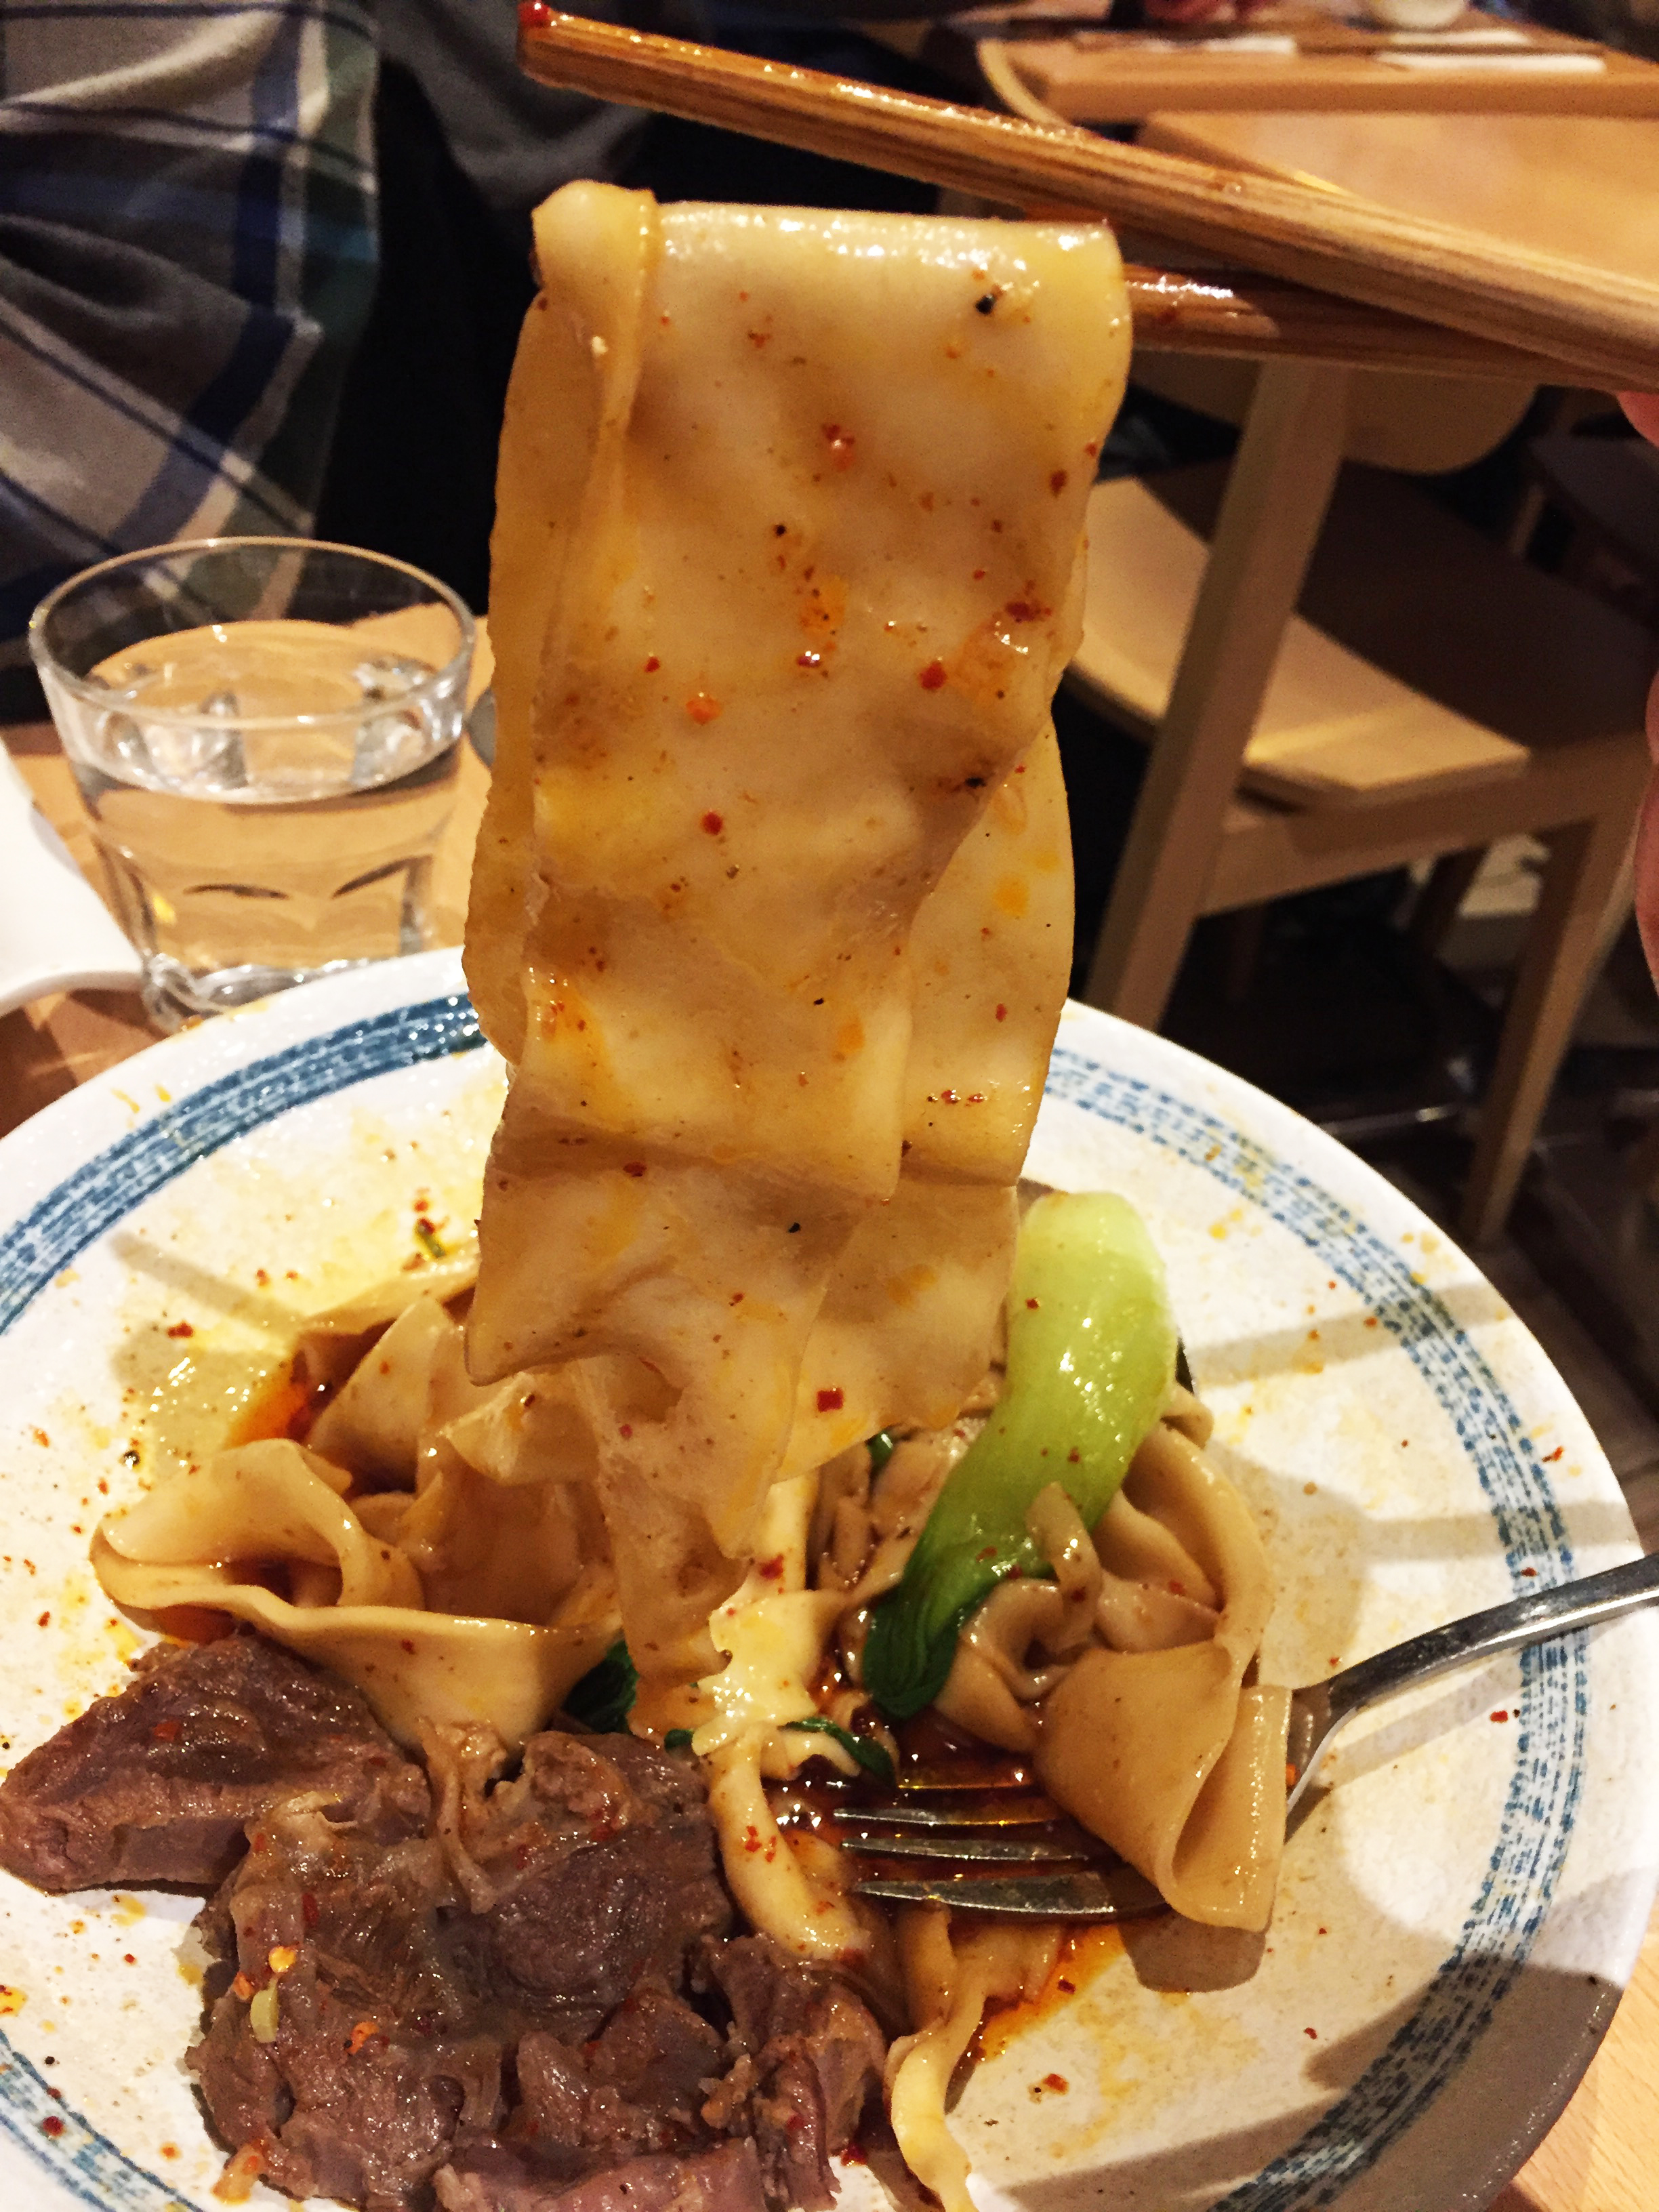 Biangbiang noodles from Xi'an Impression